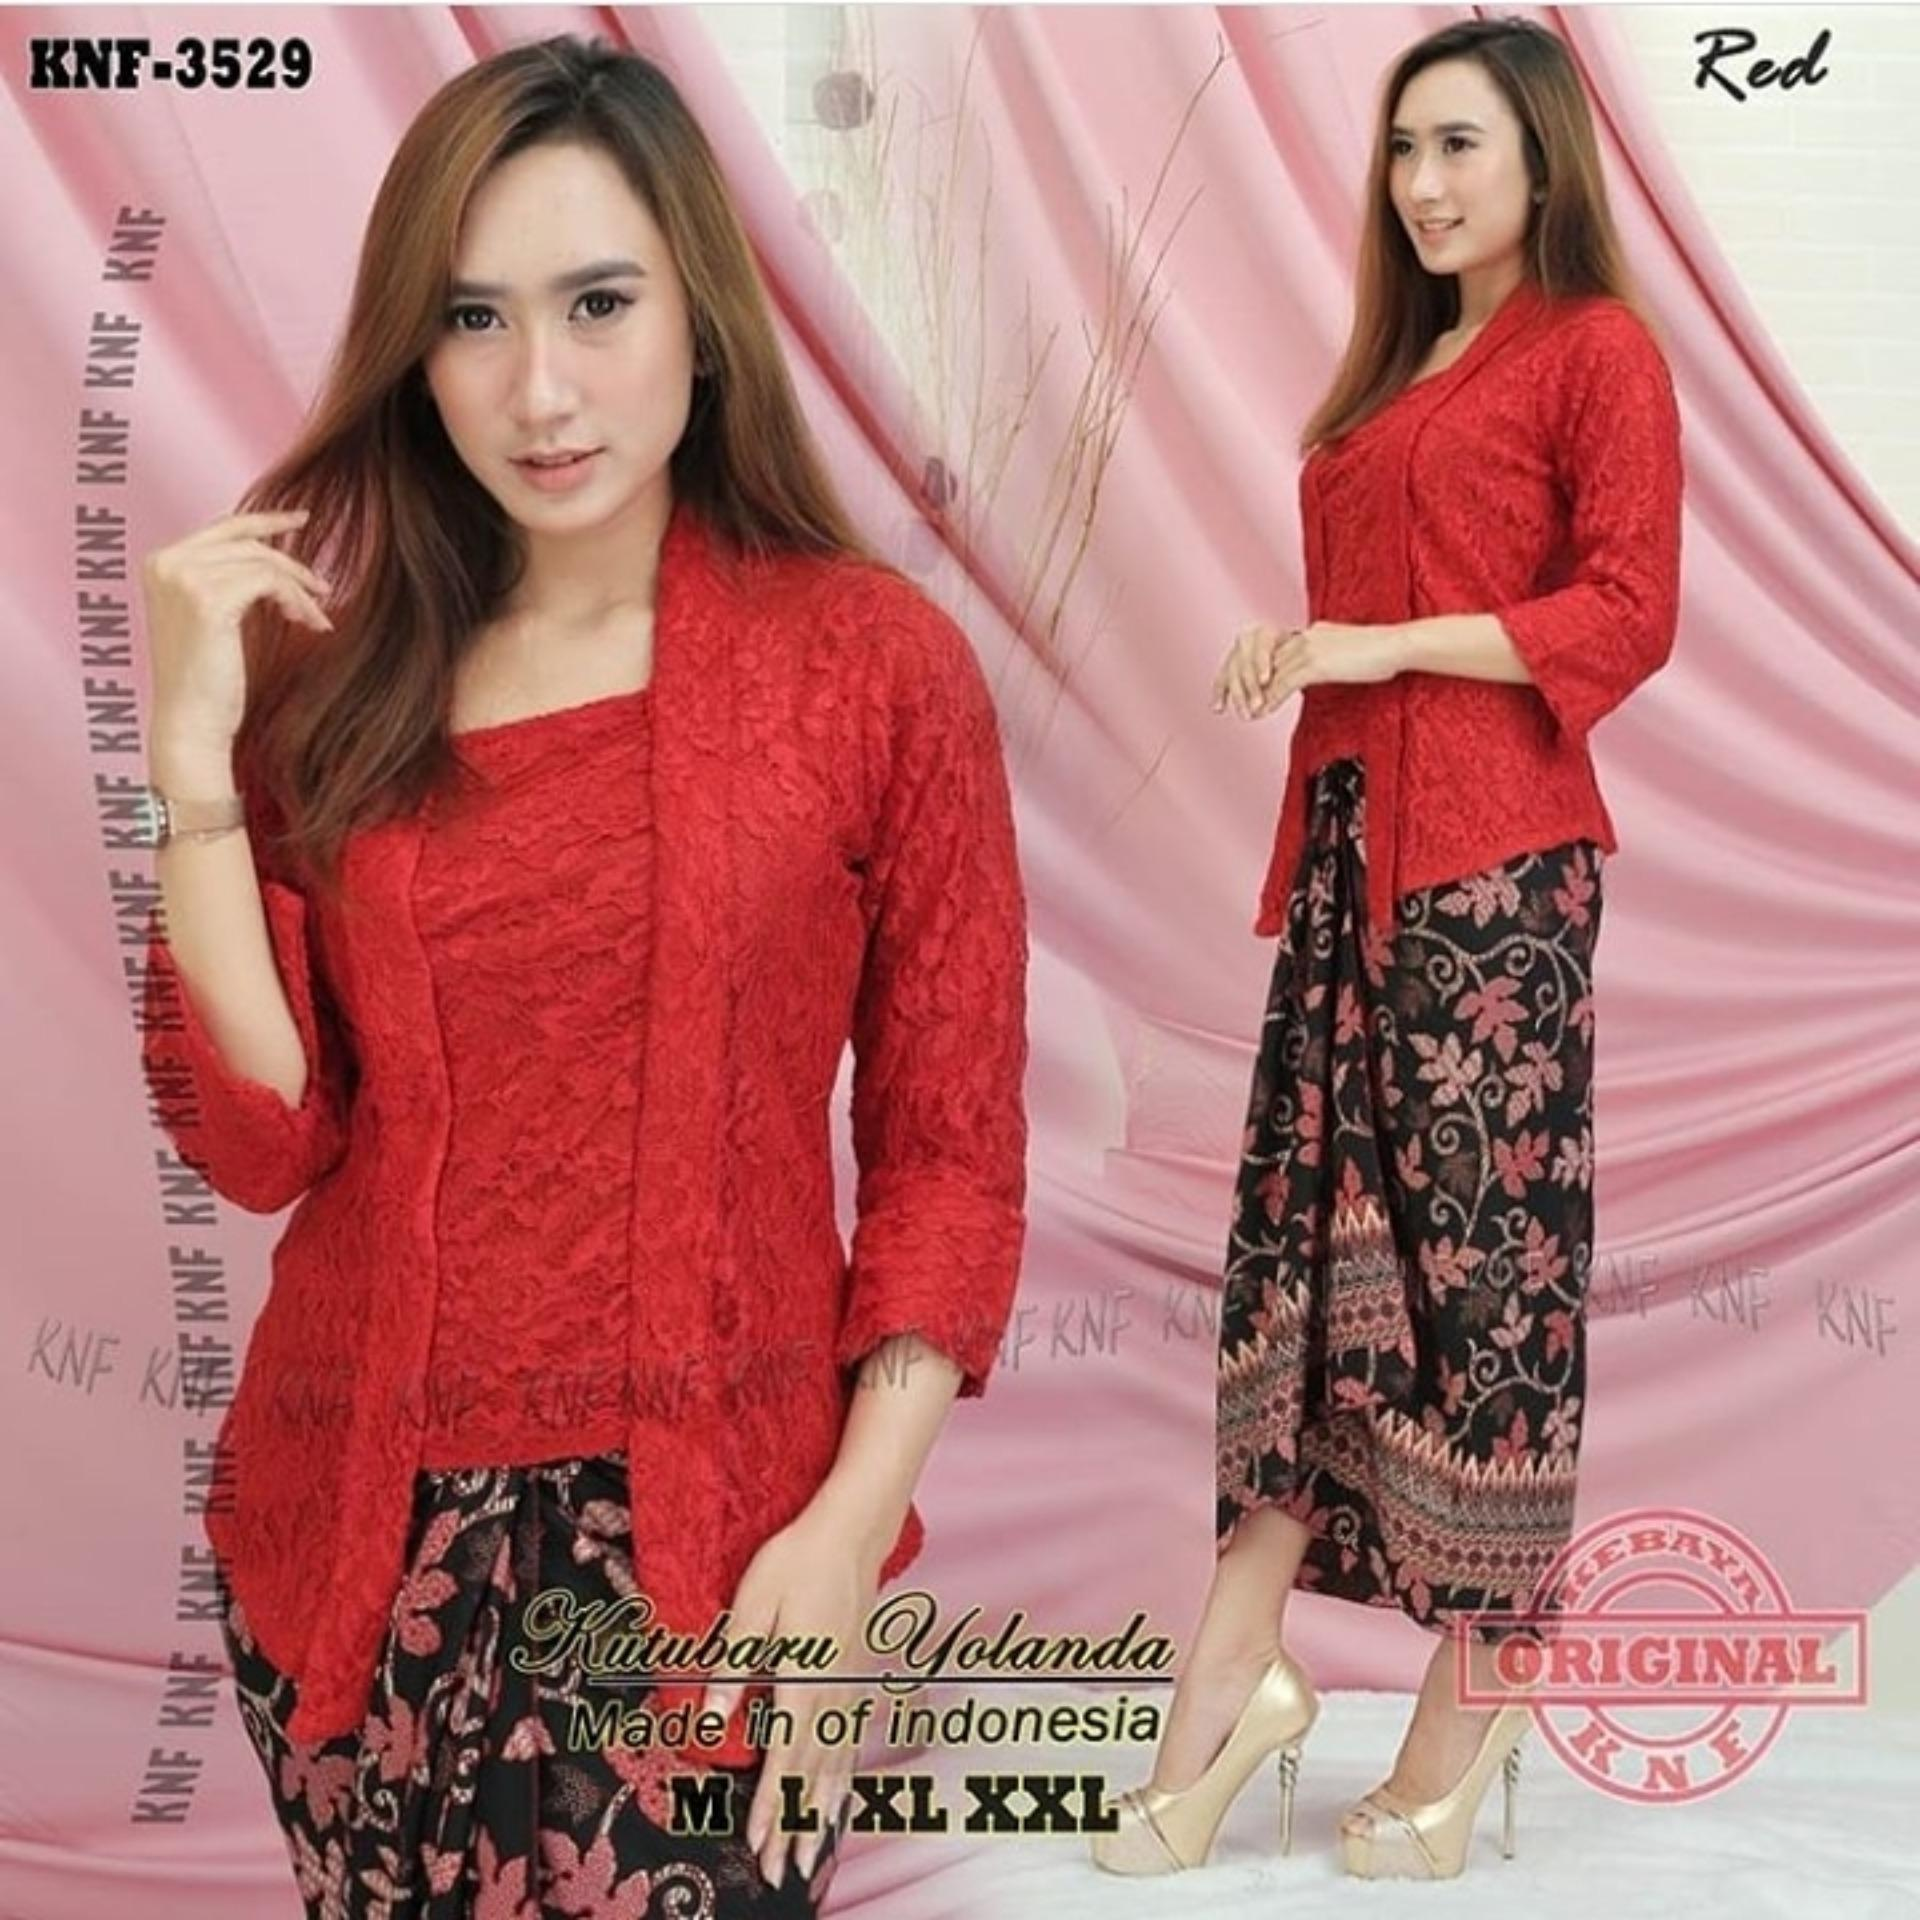 Satu Set Kebaya Kutubaru Brukat New Collection/Kebaya Modern/Kebaya Hits